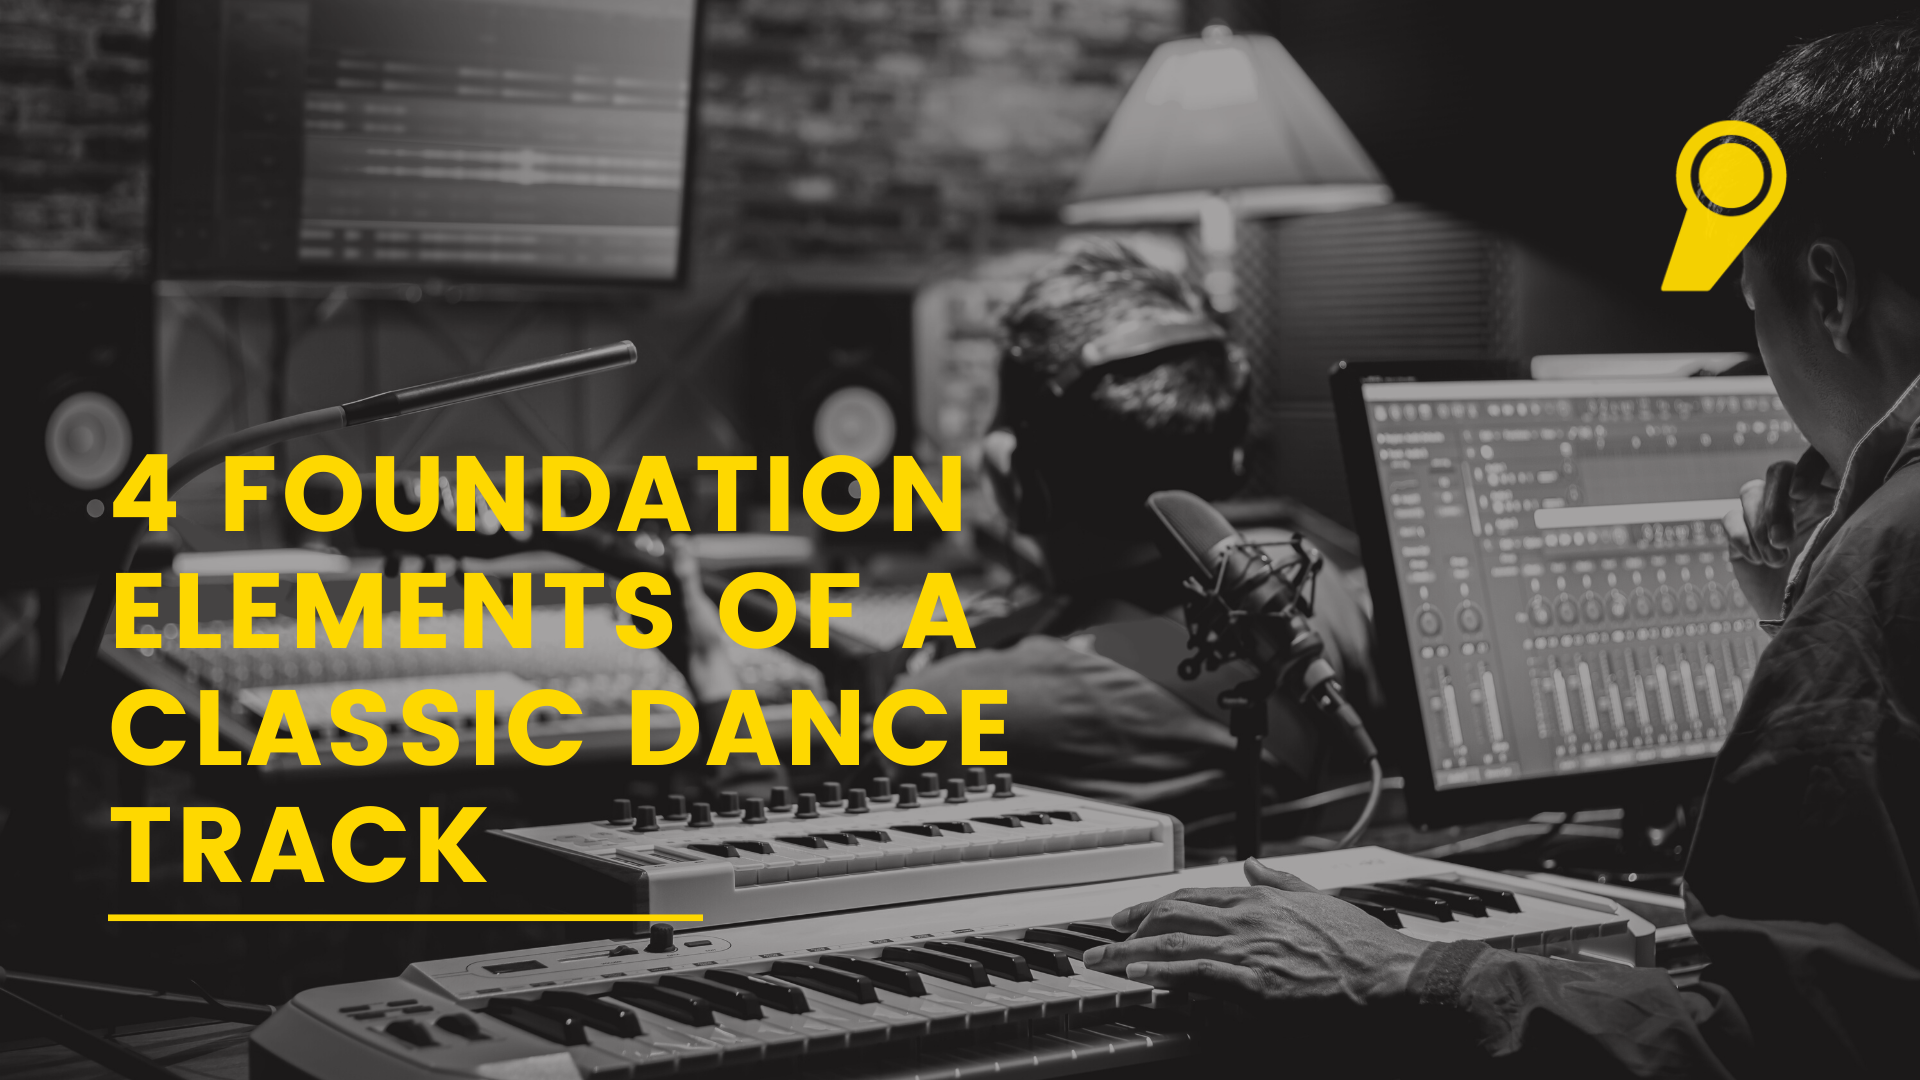 The 4 Foundation Elements Of A Classic Dance Track